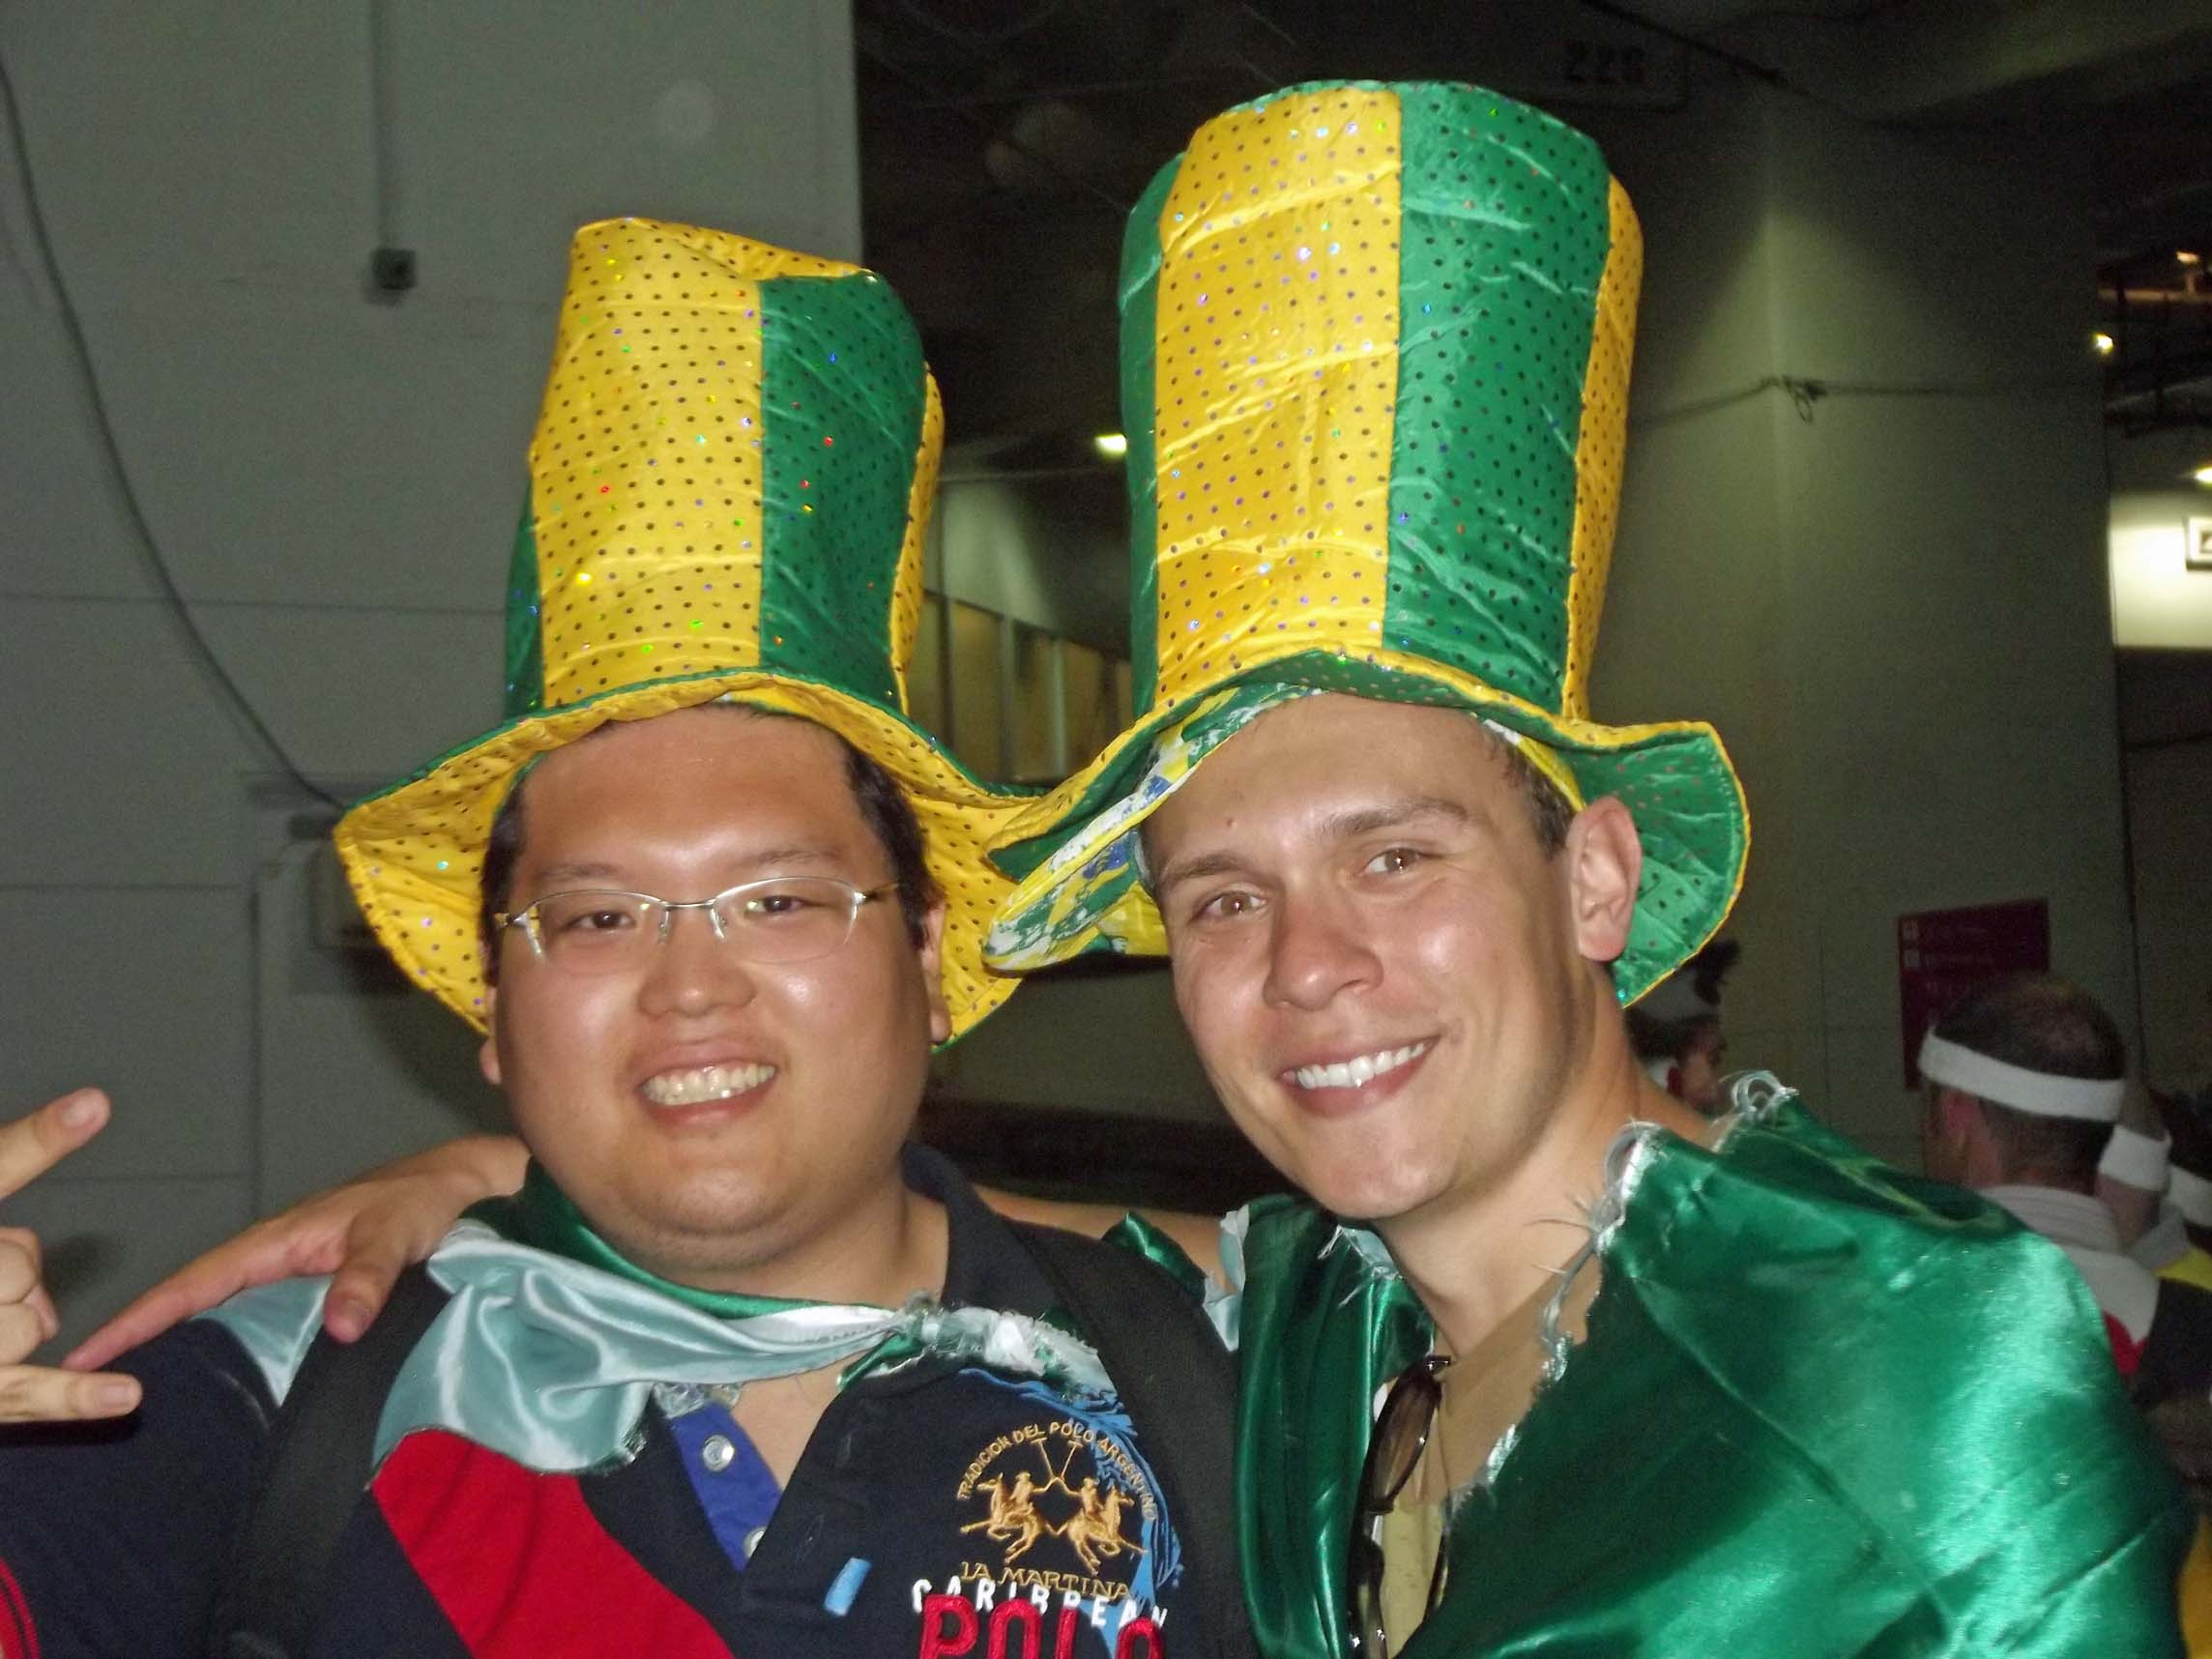 Two men in yellow and green hats